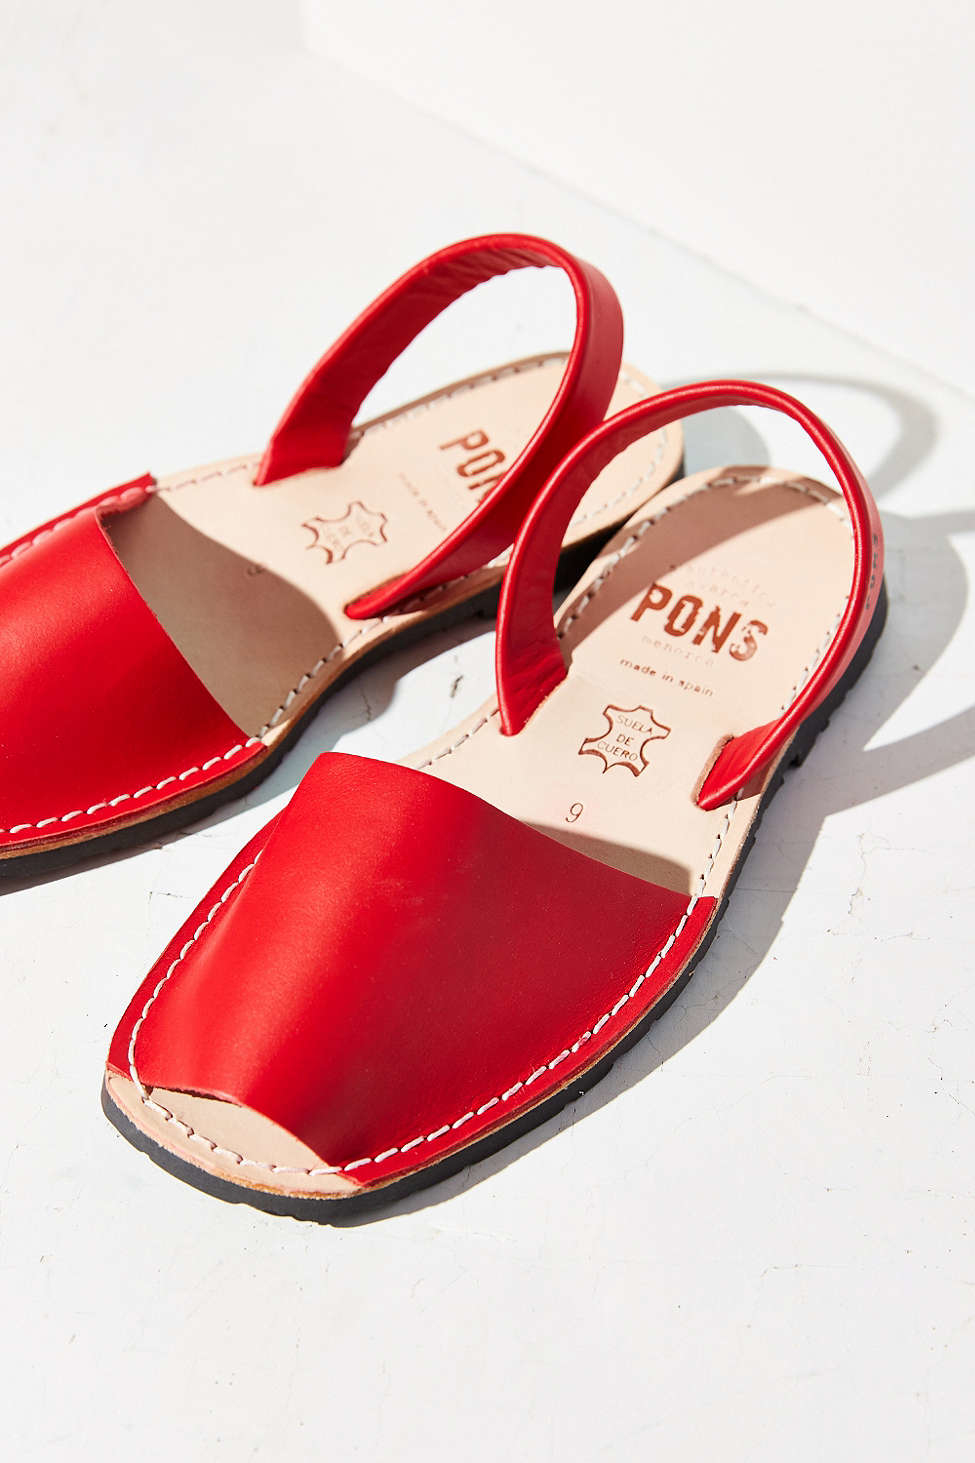 Pons Avarcas Classic Sandal In Red Lyst